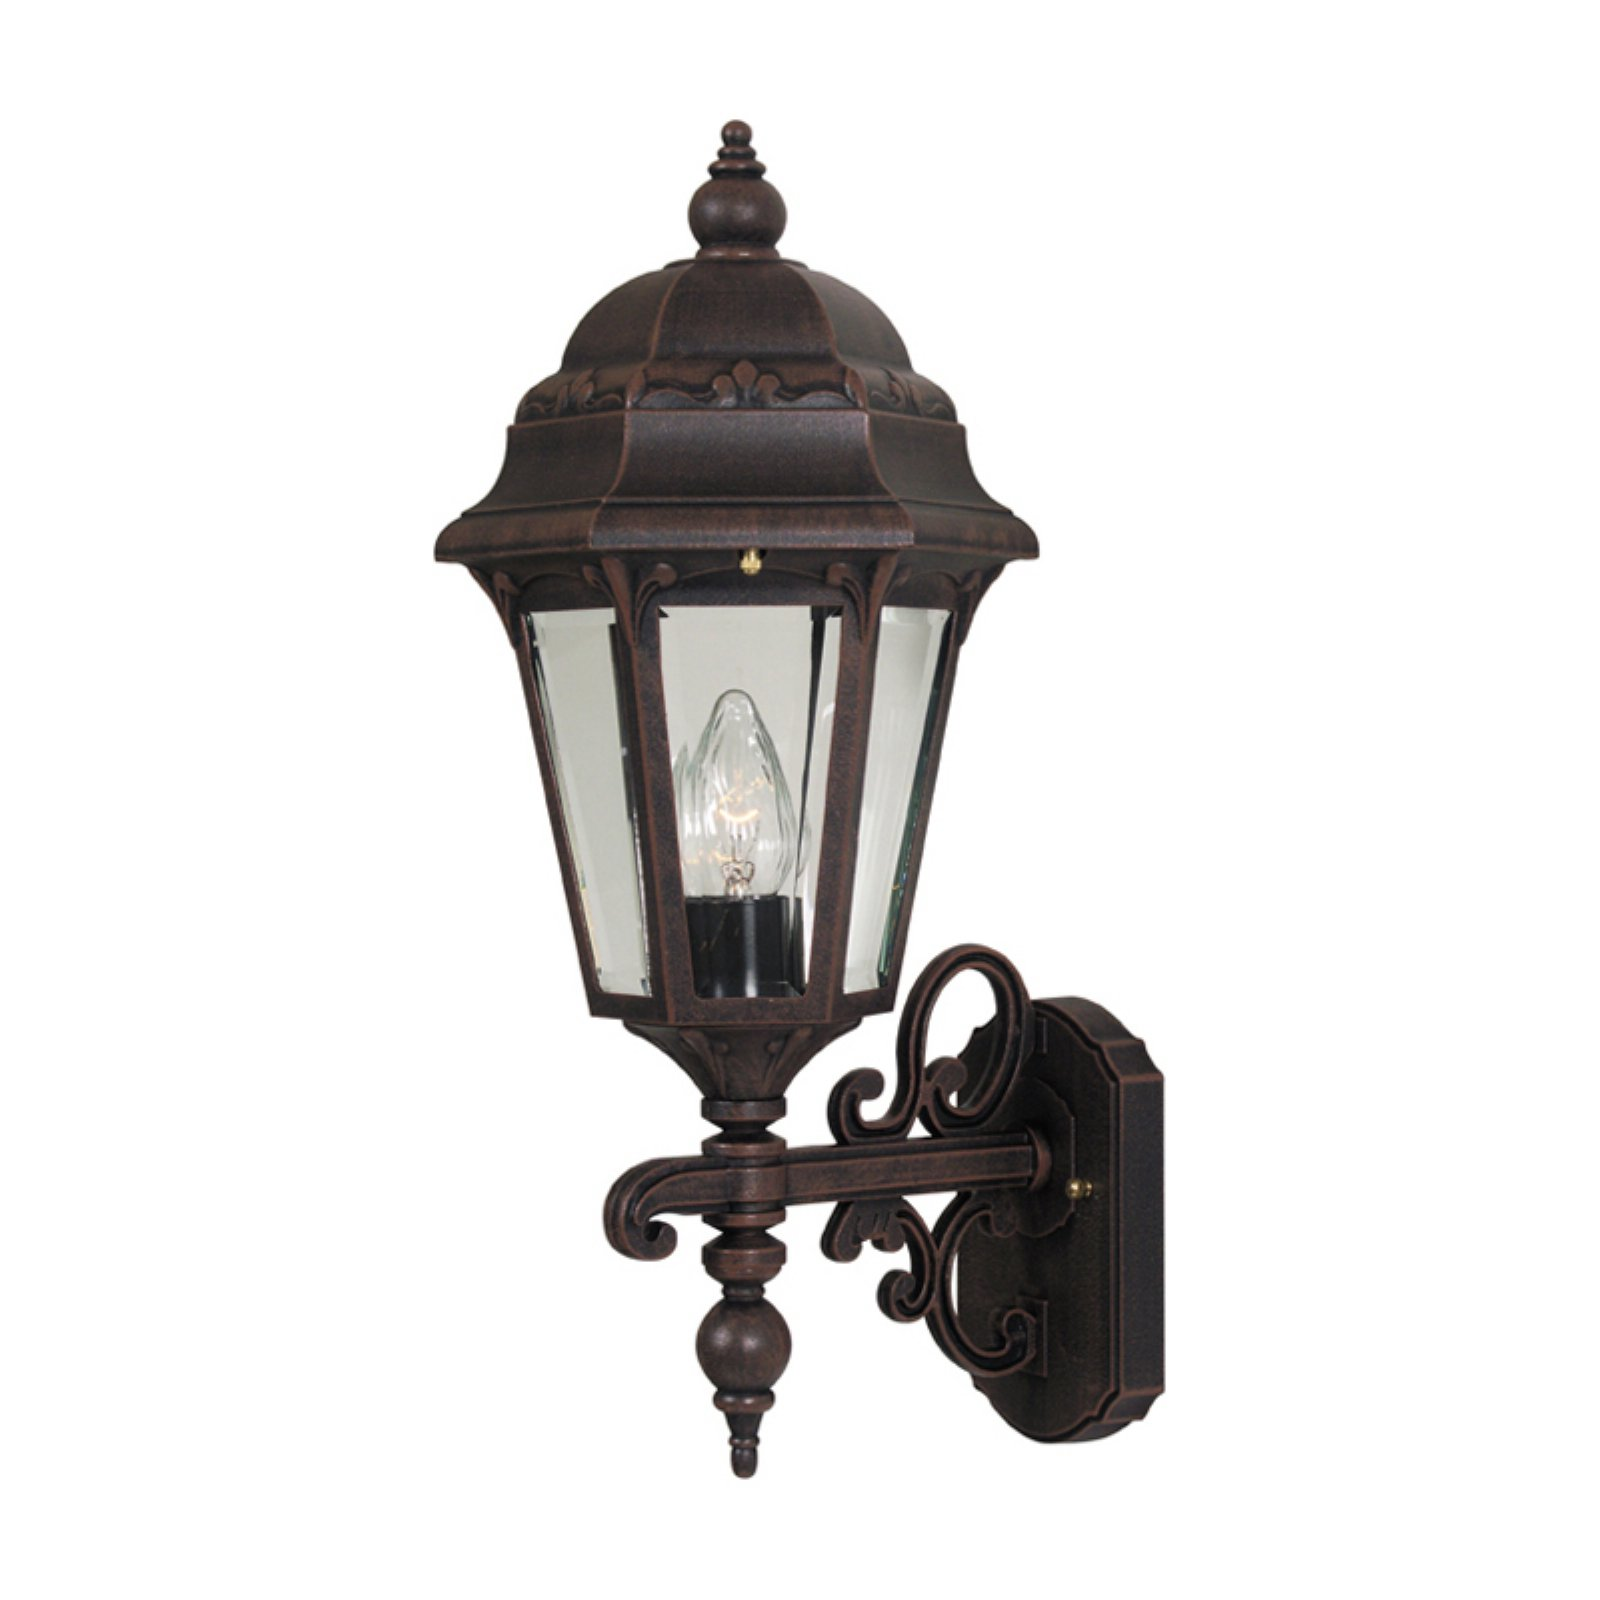 Special Lite Products Astor F-2967 Medium Bottom Mount Outdoor Wall Light